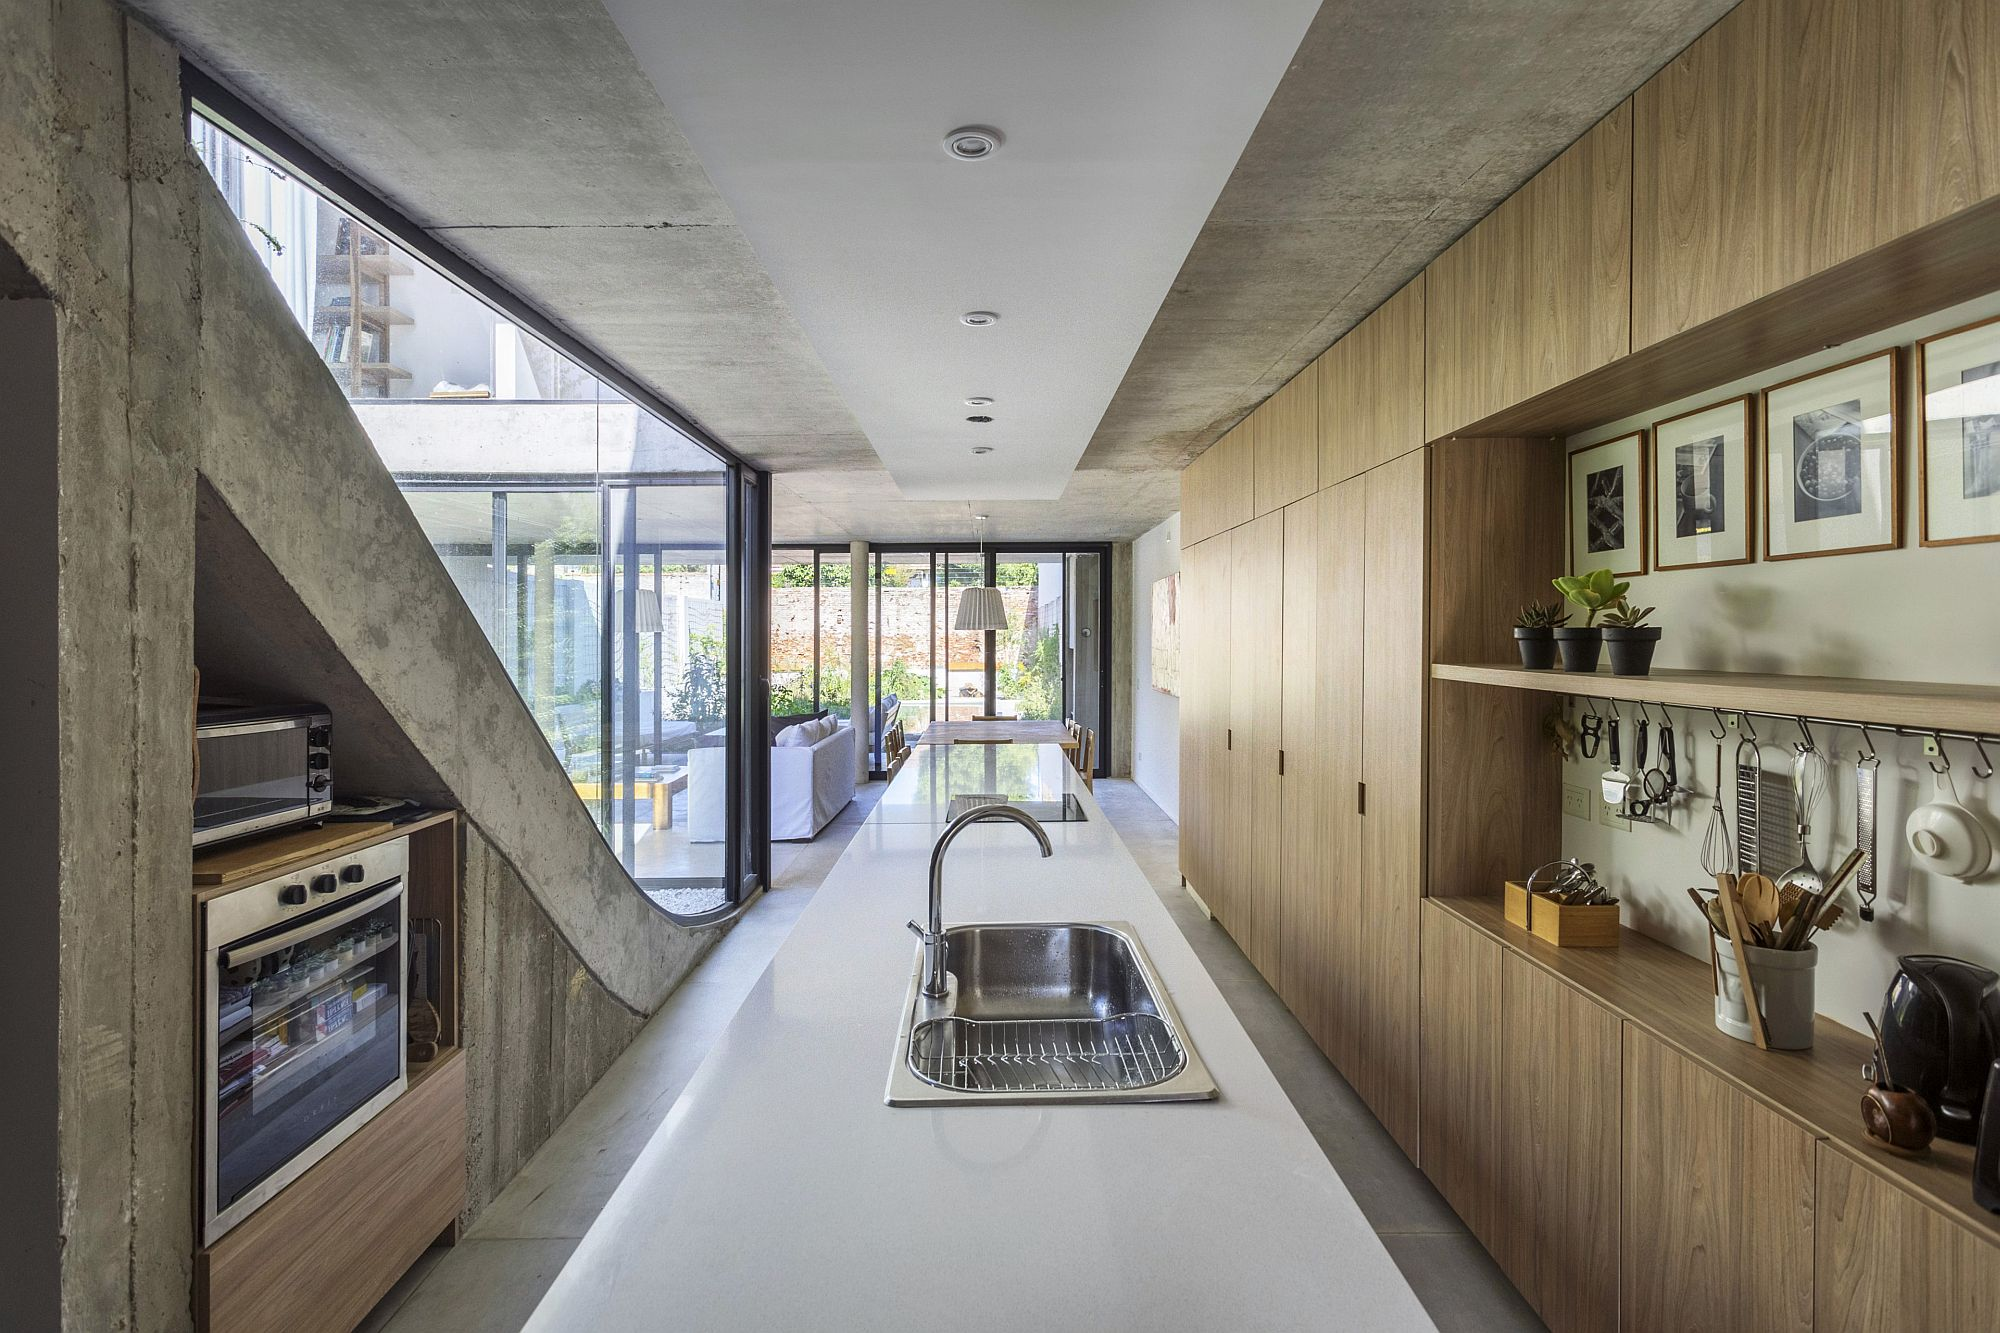 Wood and concrete kitchen and dining area of the MeMo House